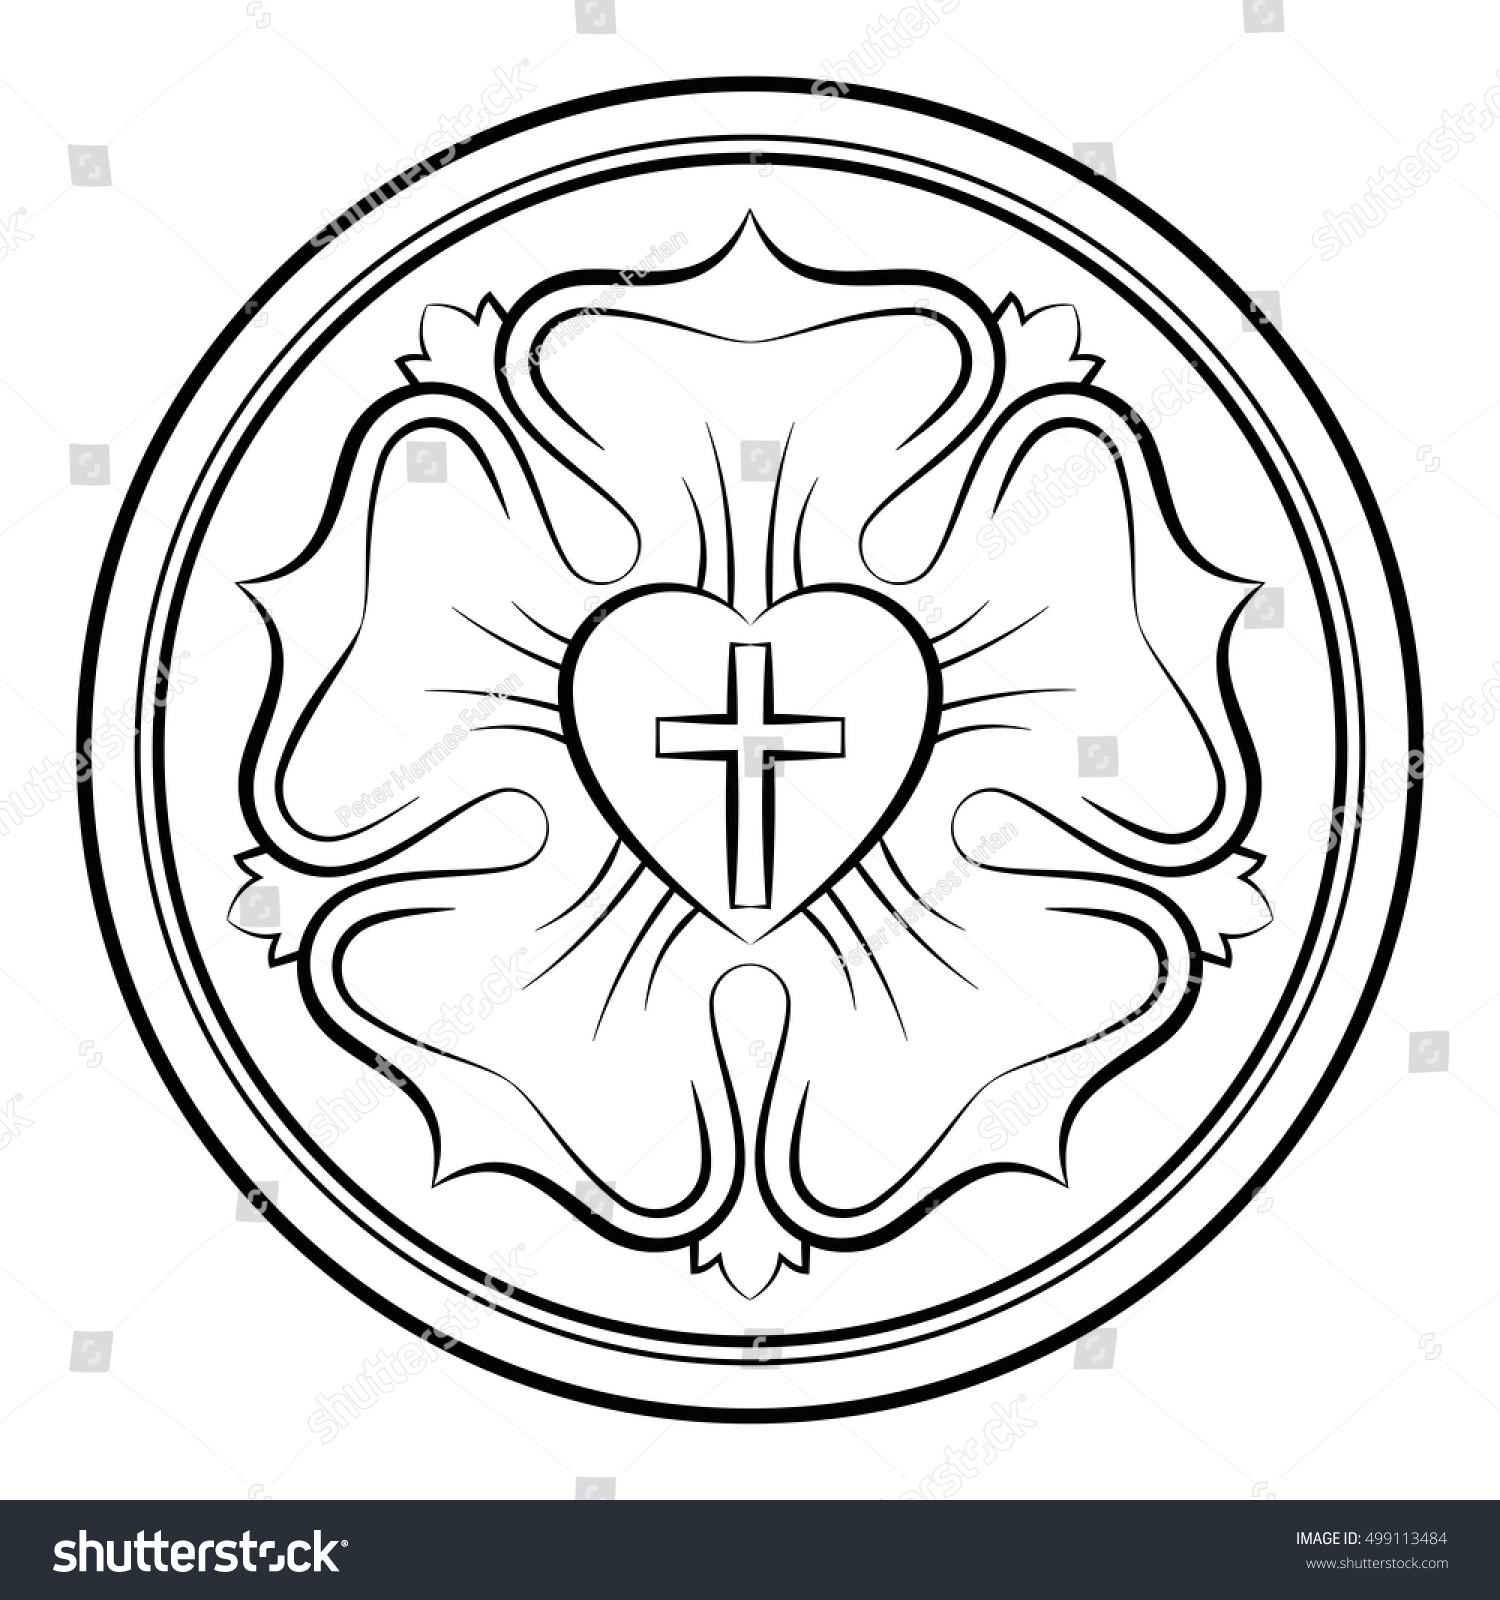 Luther rose called luther seal symbol stock vector 499113484 luther rose also called luther seal a symbol of lutheranism calligraphic black buycottarizona Choice Image